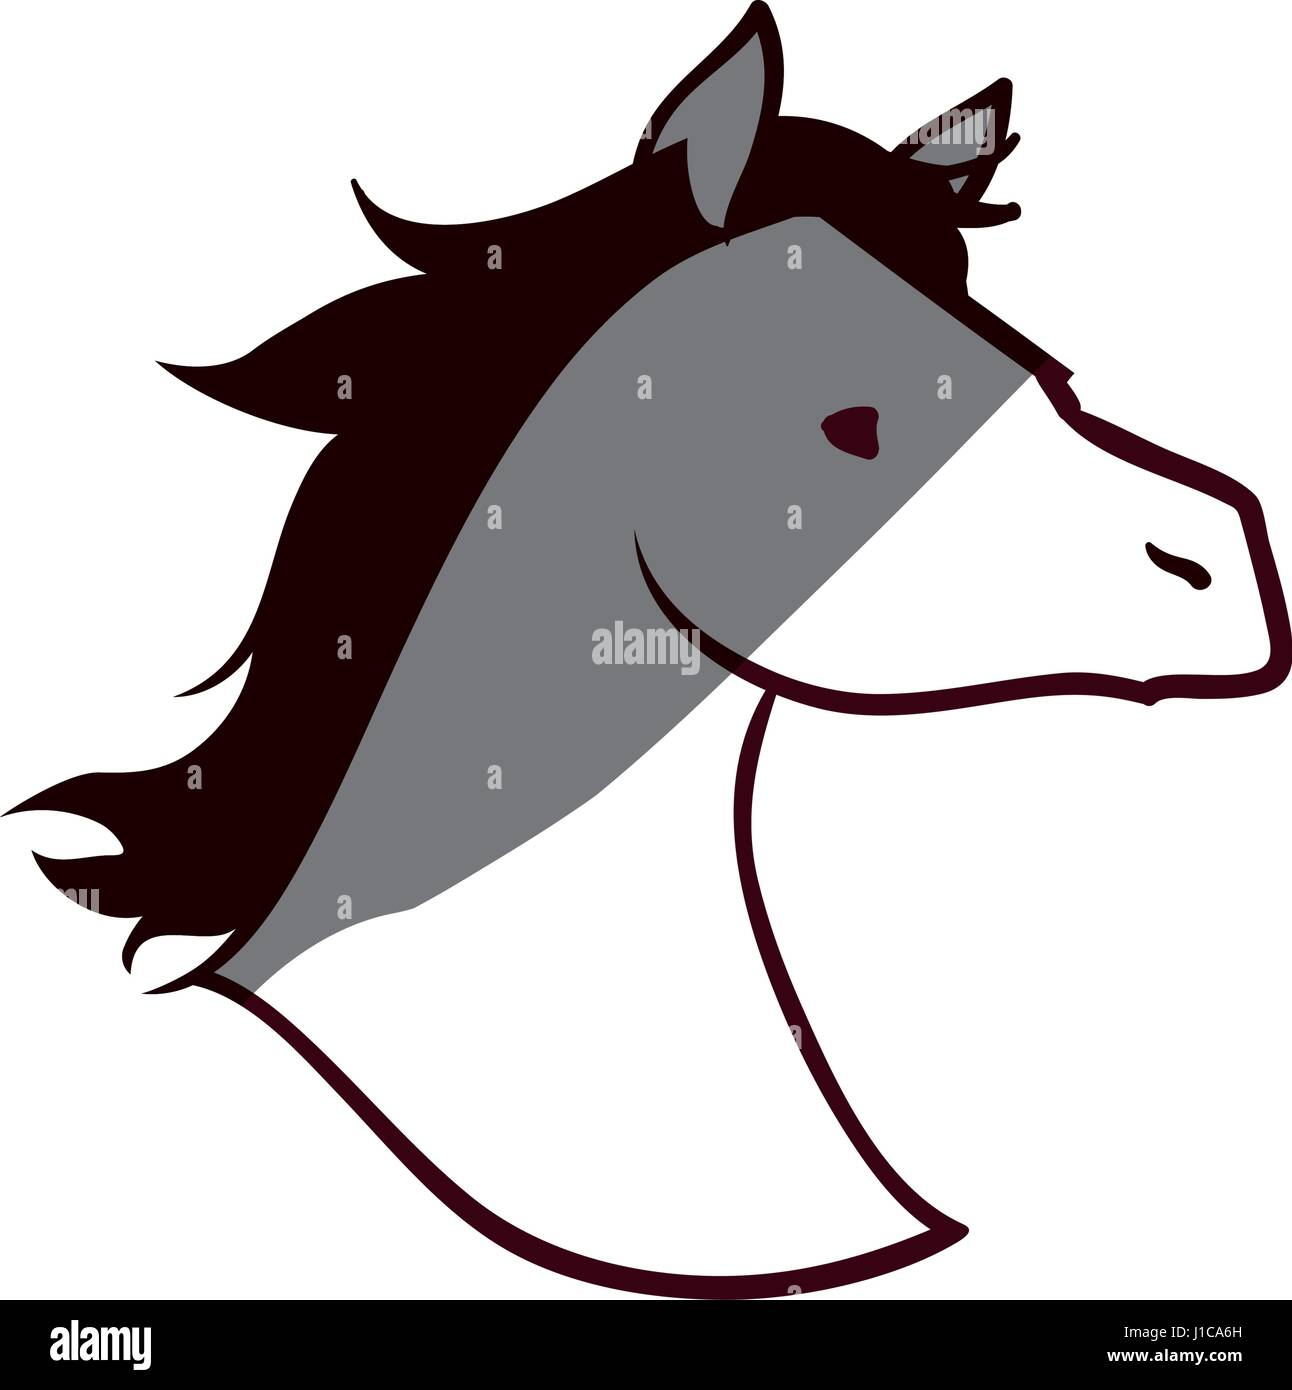 Head Horse Silhouette High Resolution Stock Photography And Images Alamy